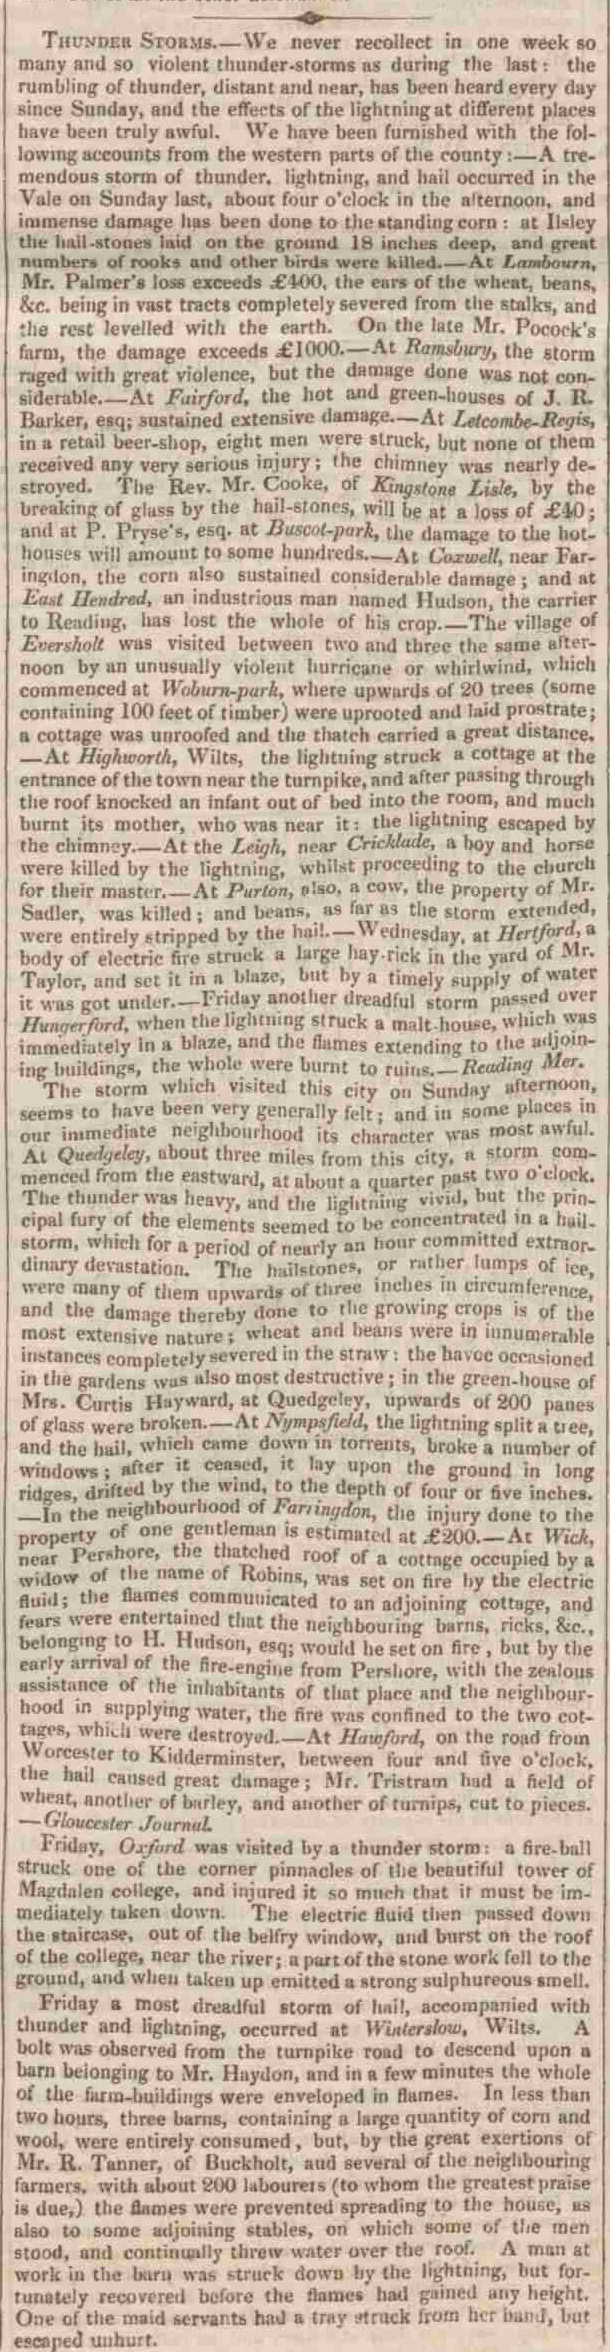 Thunder storms reported in 1831